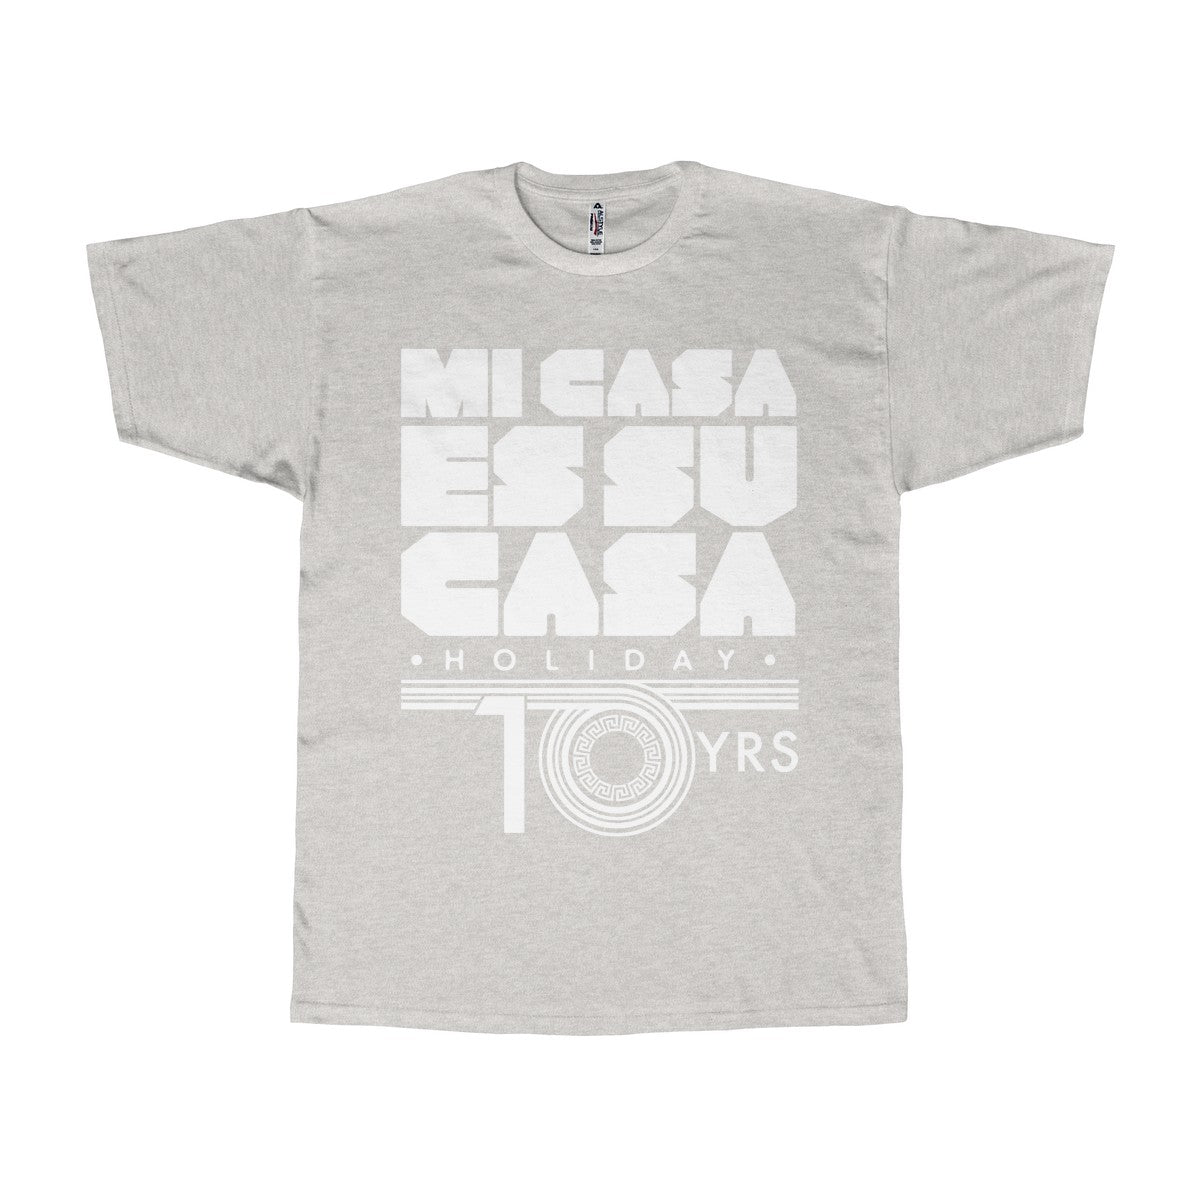 Mi Casa Holiday 10 yrs Adult Unisex Tee